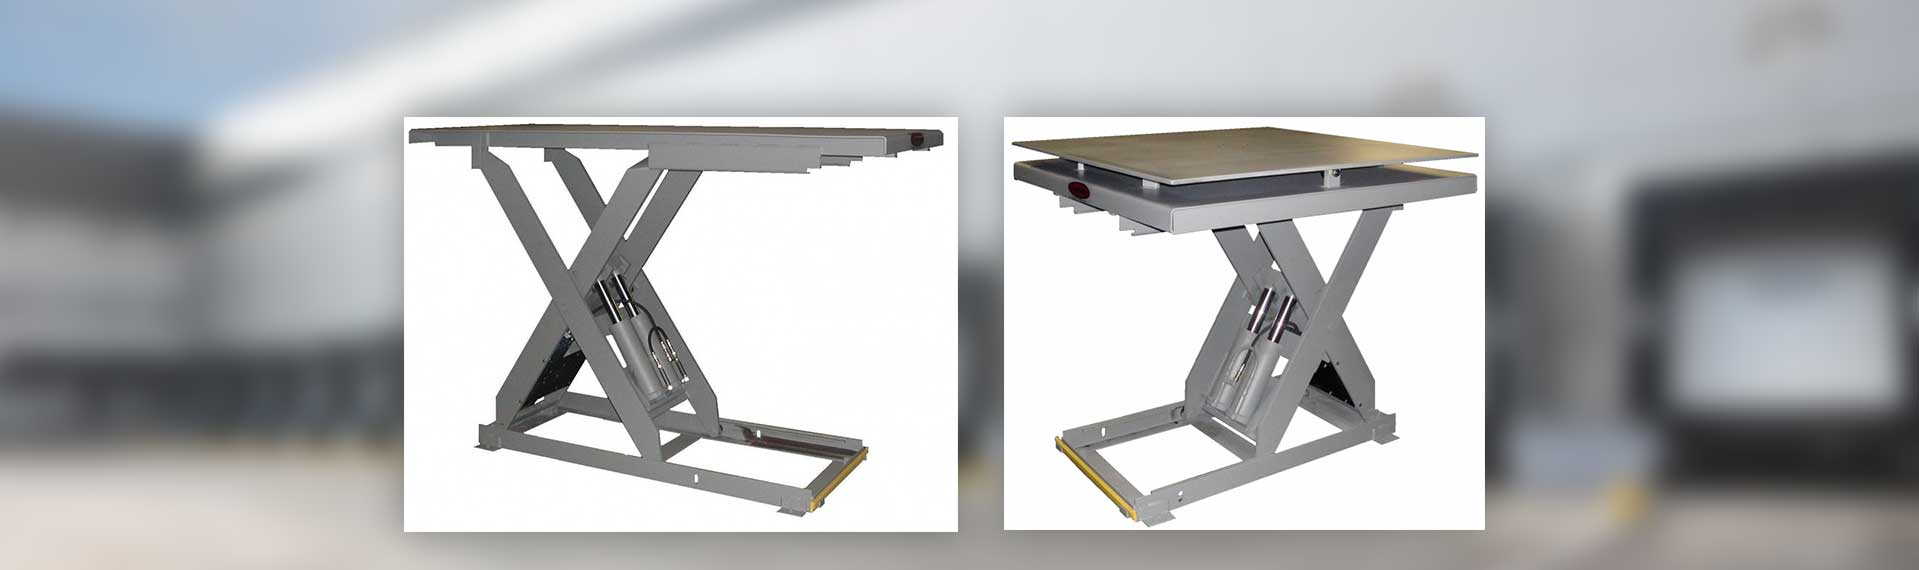 YARD-RAMP-SITE tables for dock lifts